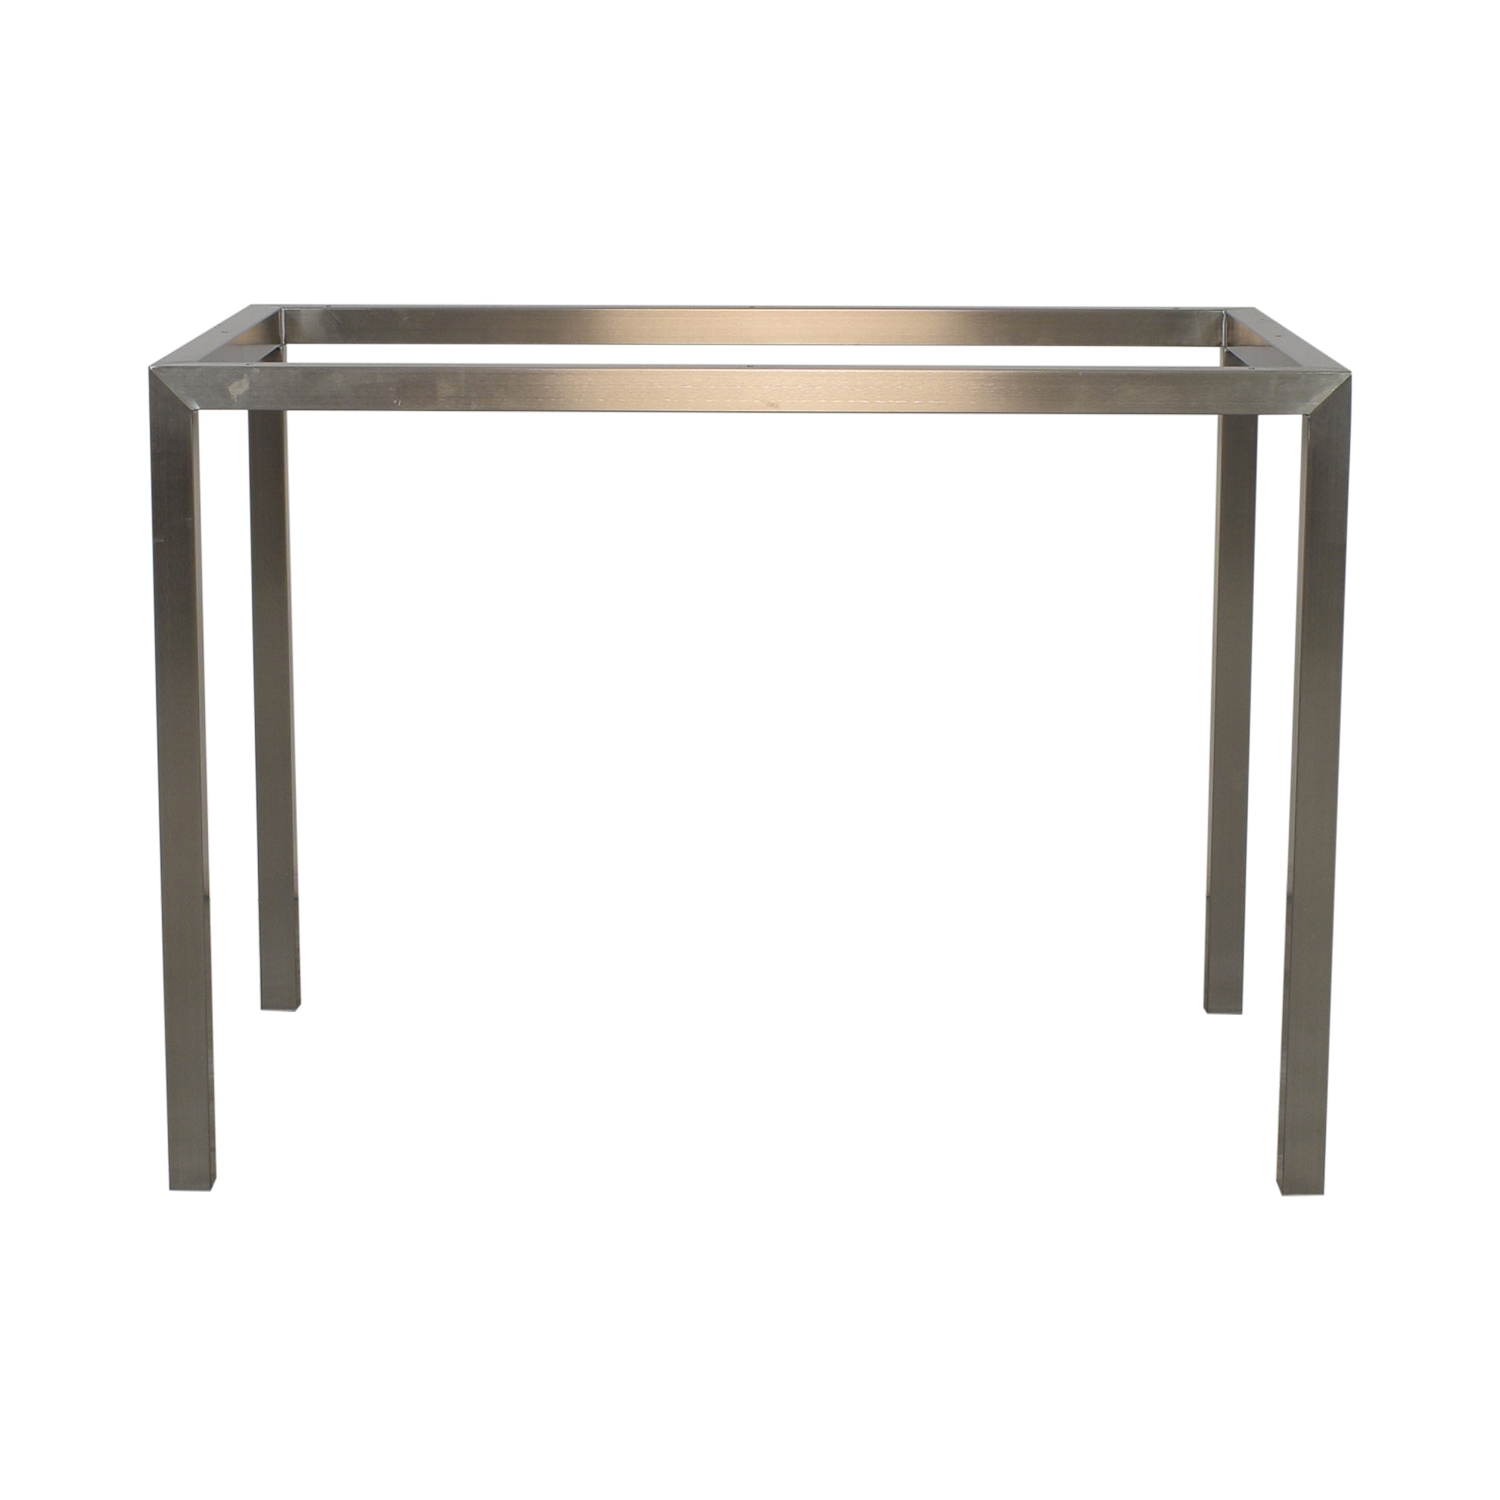 Crate & Barrel Parsons Dining Table Base Only sale